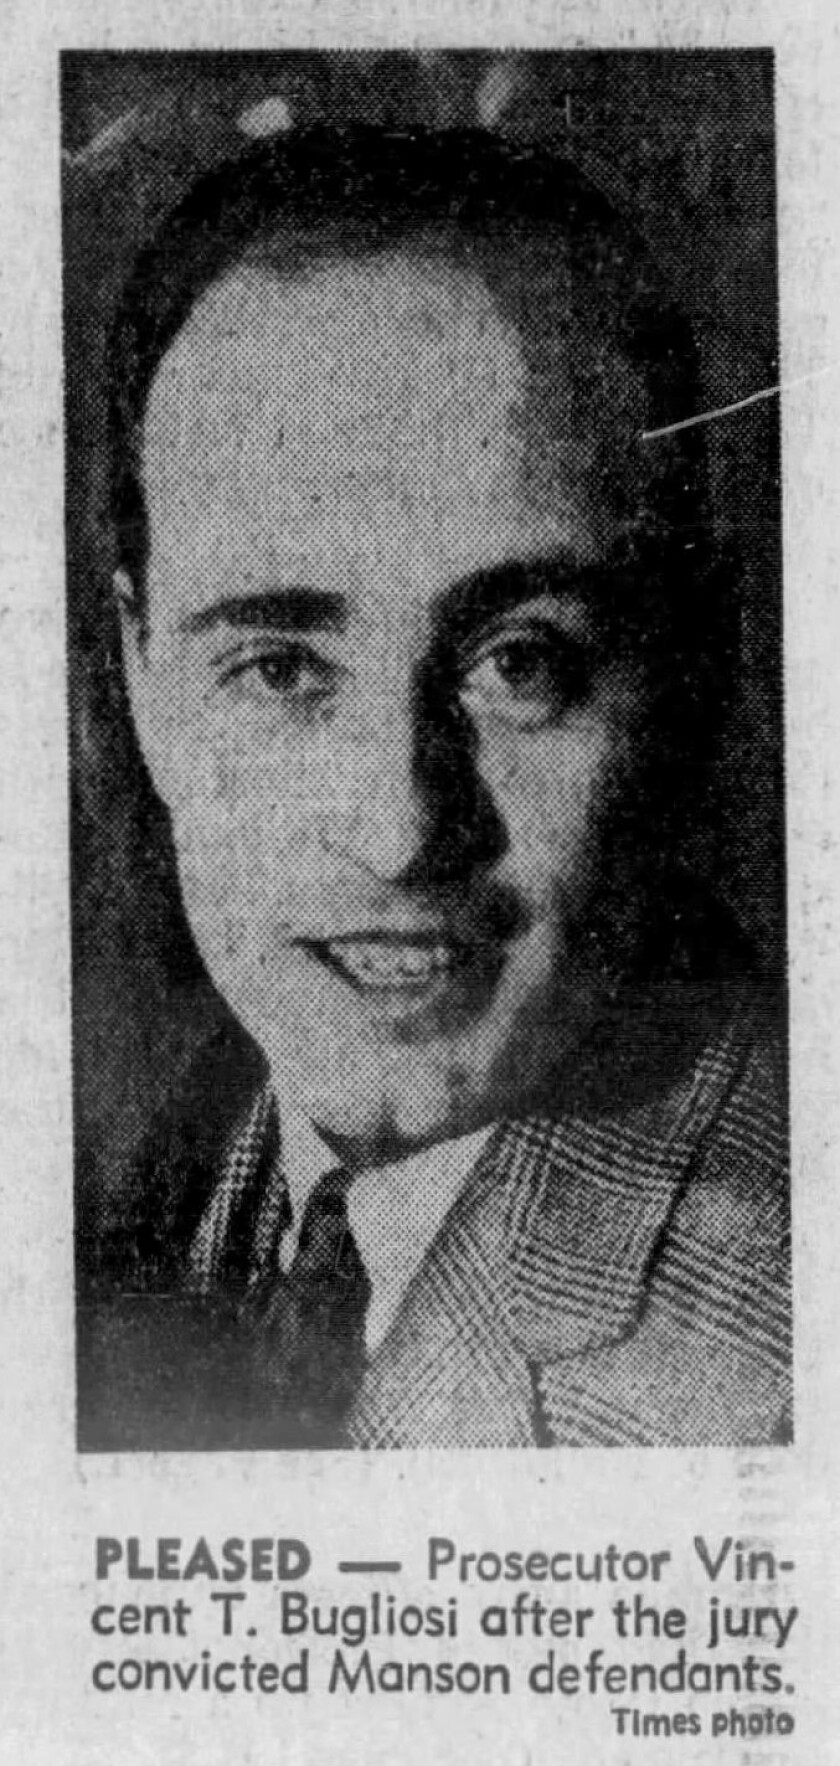 Prosecutor Vincent T. Bugliosi after the jury convicted Manson defendants.